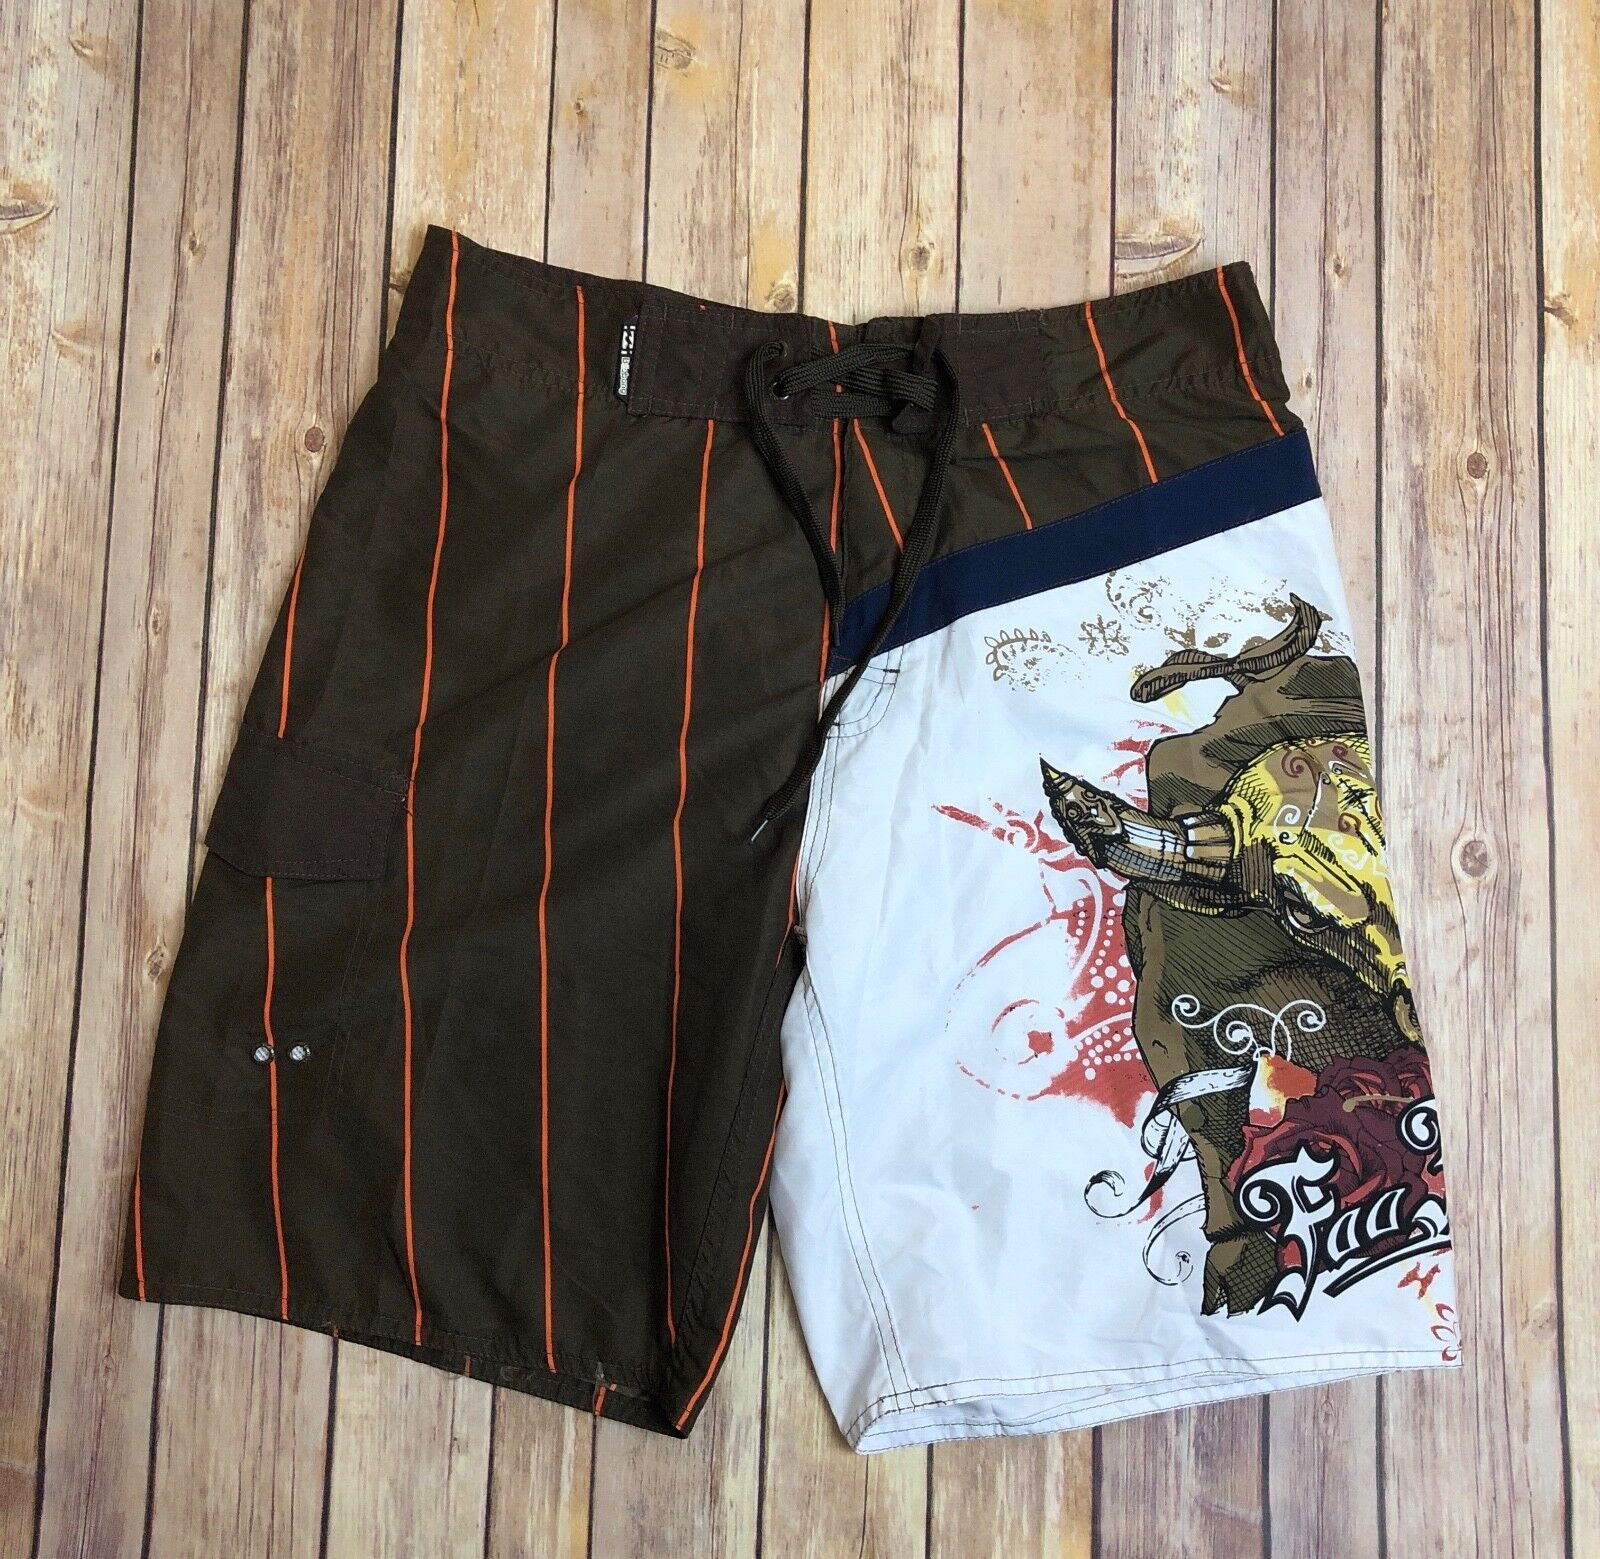 NWT Billabong Foo Fighters Brown & orange Lined Swim Trunks Board Shorts 30